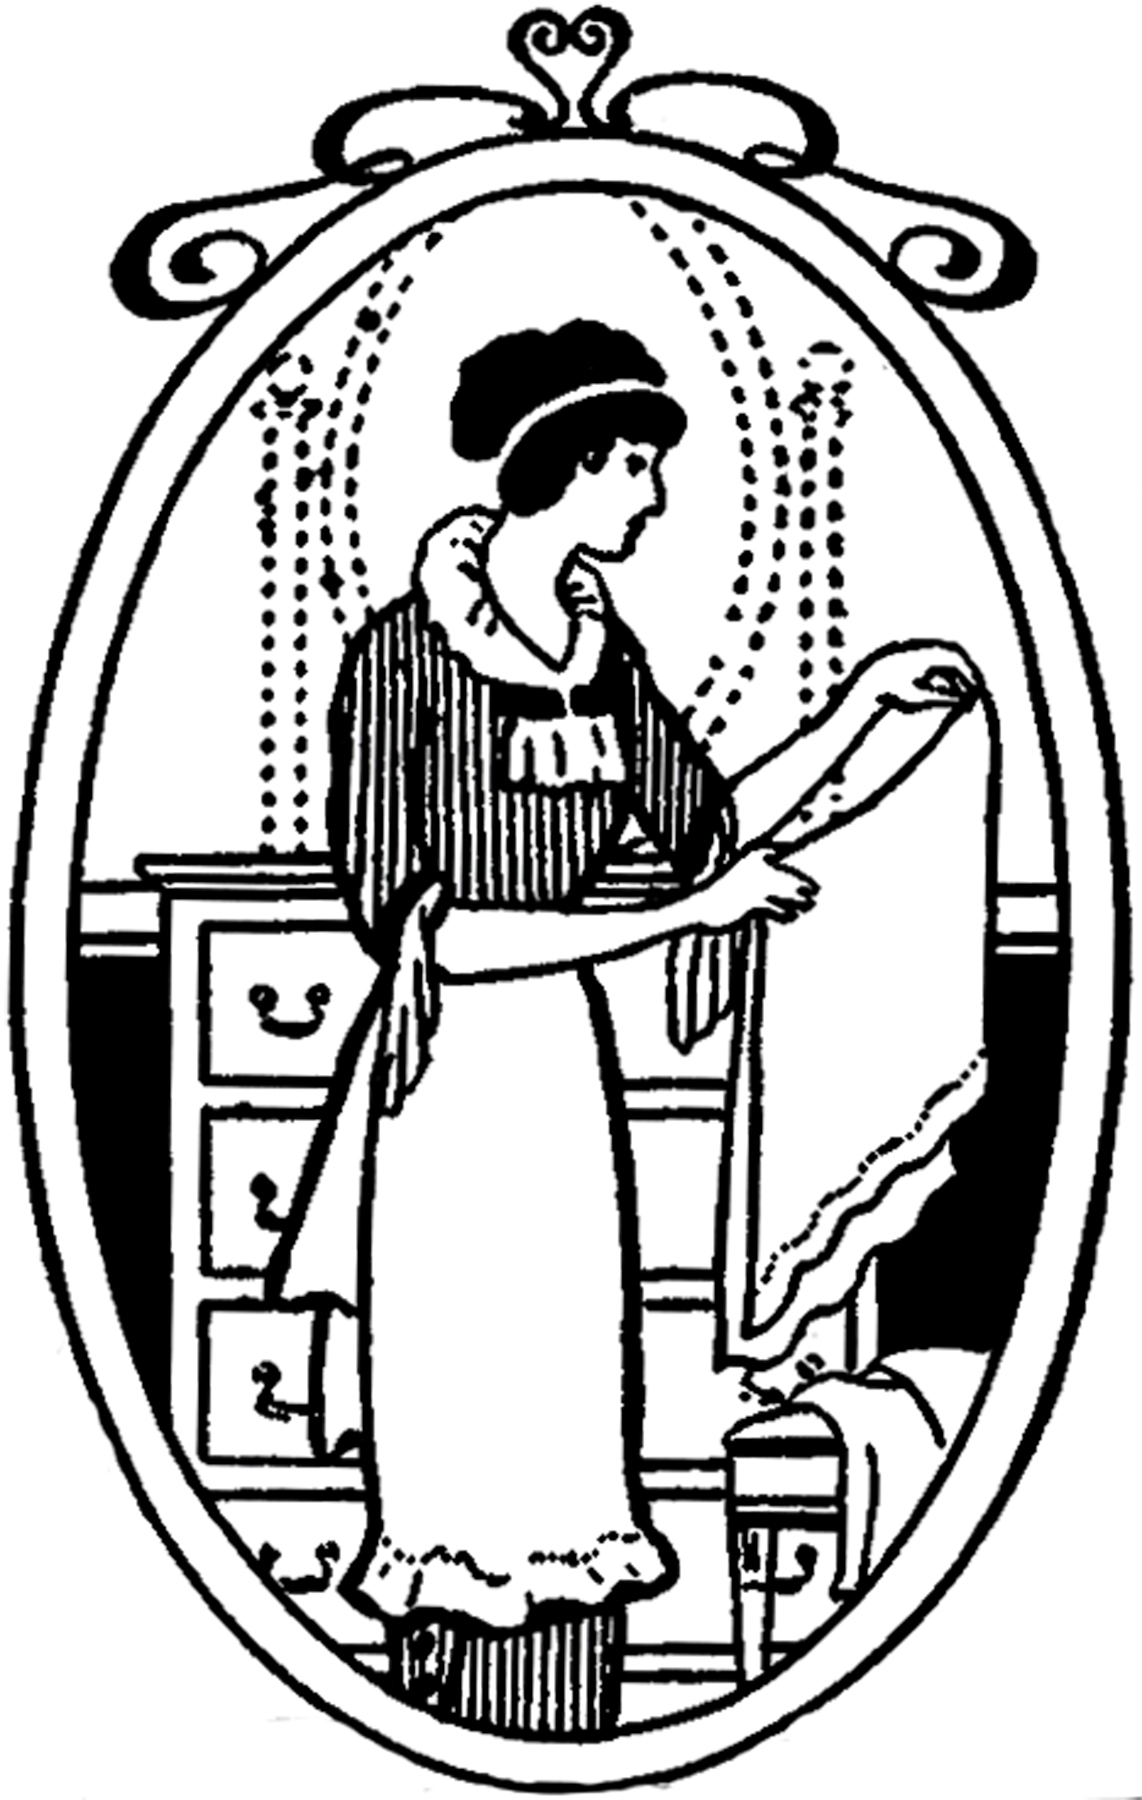 Maid clipart vintage. Image laundry the graphics